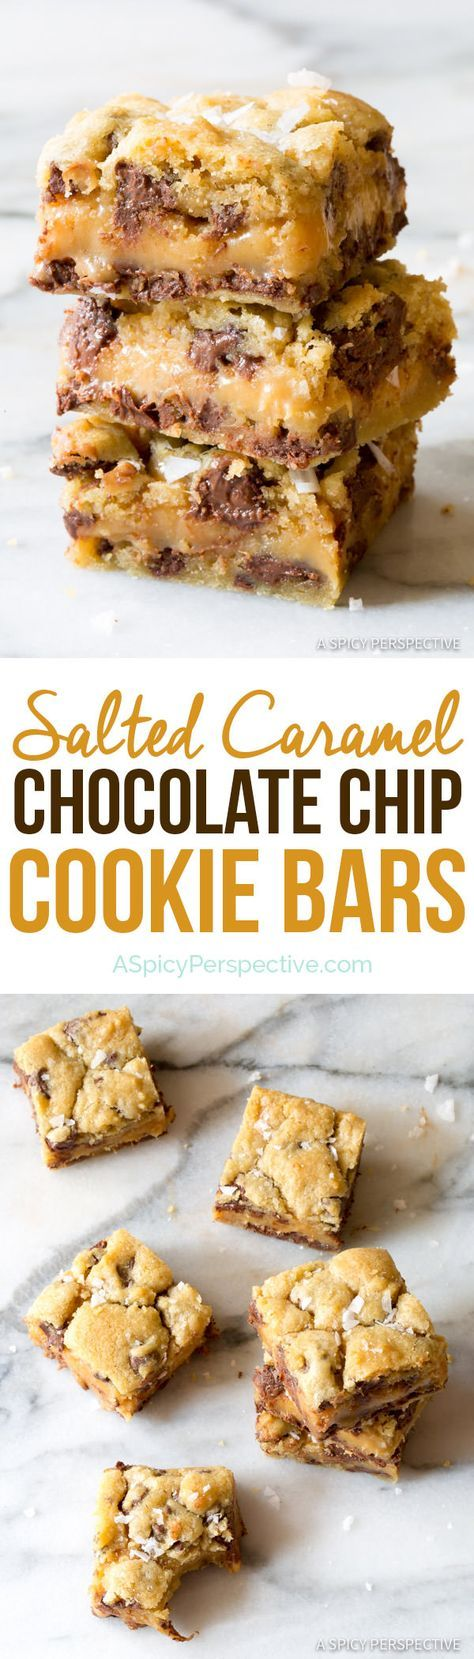 "Irresistible Gooey Salted Caramel Chocolate Chip Cookie Bars | <a href=""http://ASpicyPerspective.com"" rel=""nofollow"" target=""_blank"">ASpicyPerspective...</a>"